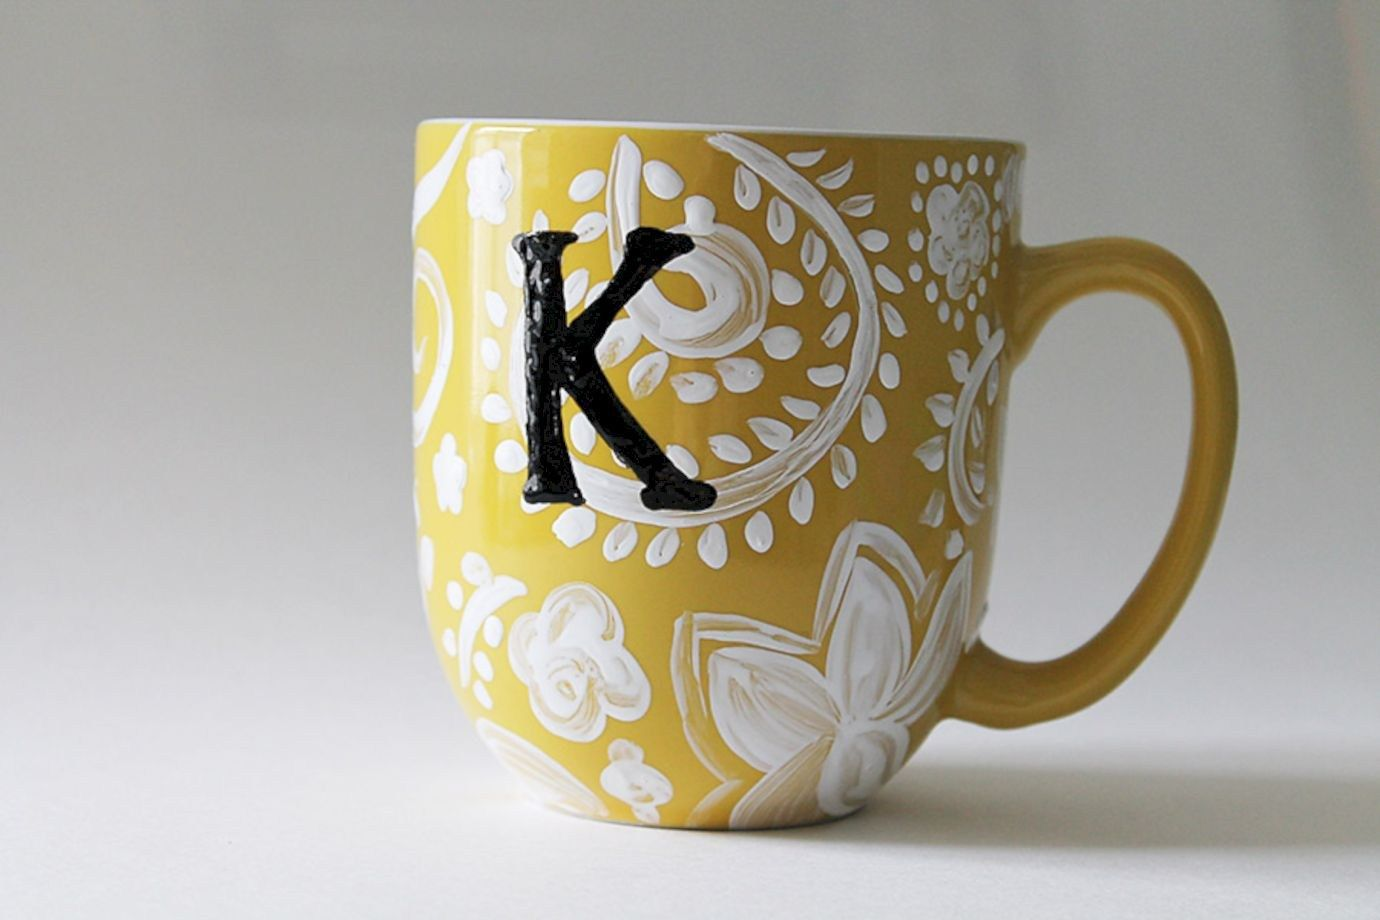 64 Cute And Funny Diy Coffee Mug Design Ideas You Should Try With